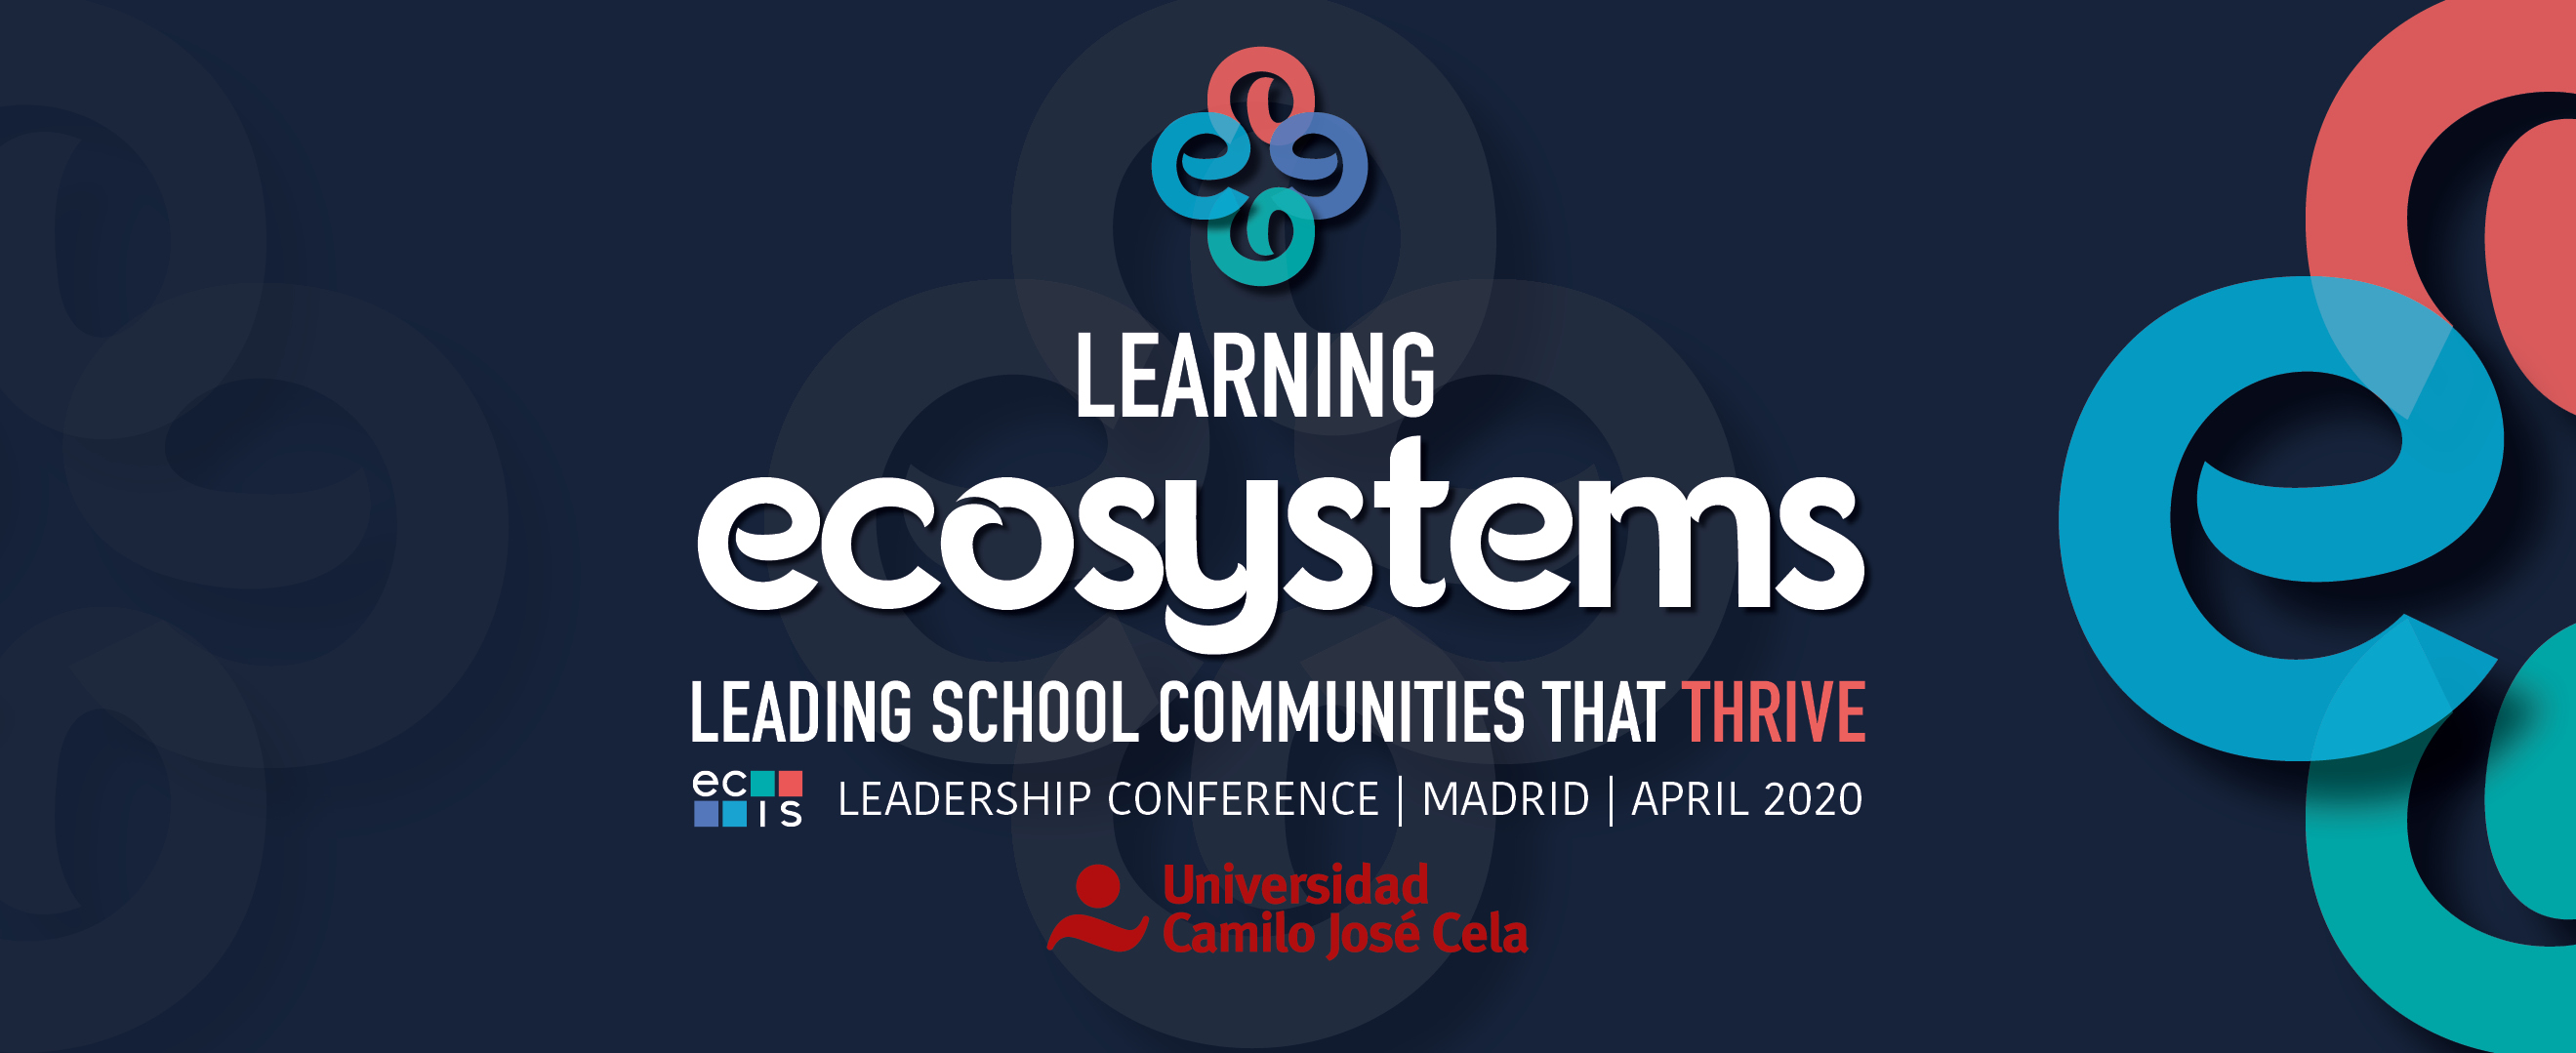 ECIS Leadership Conference 2020 - Madrid